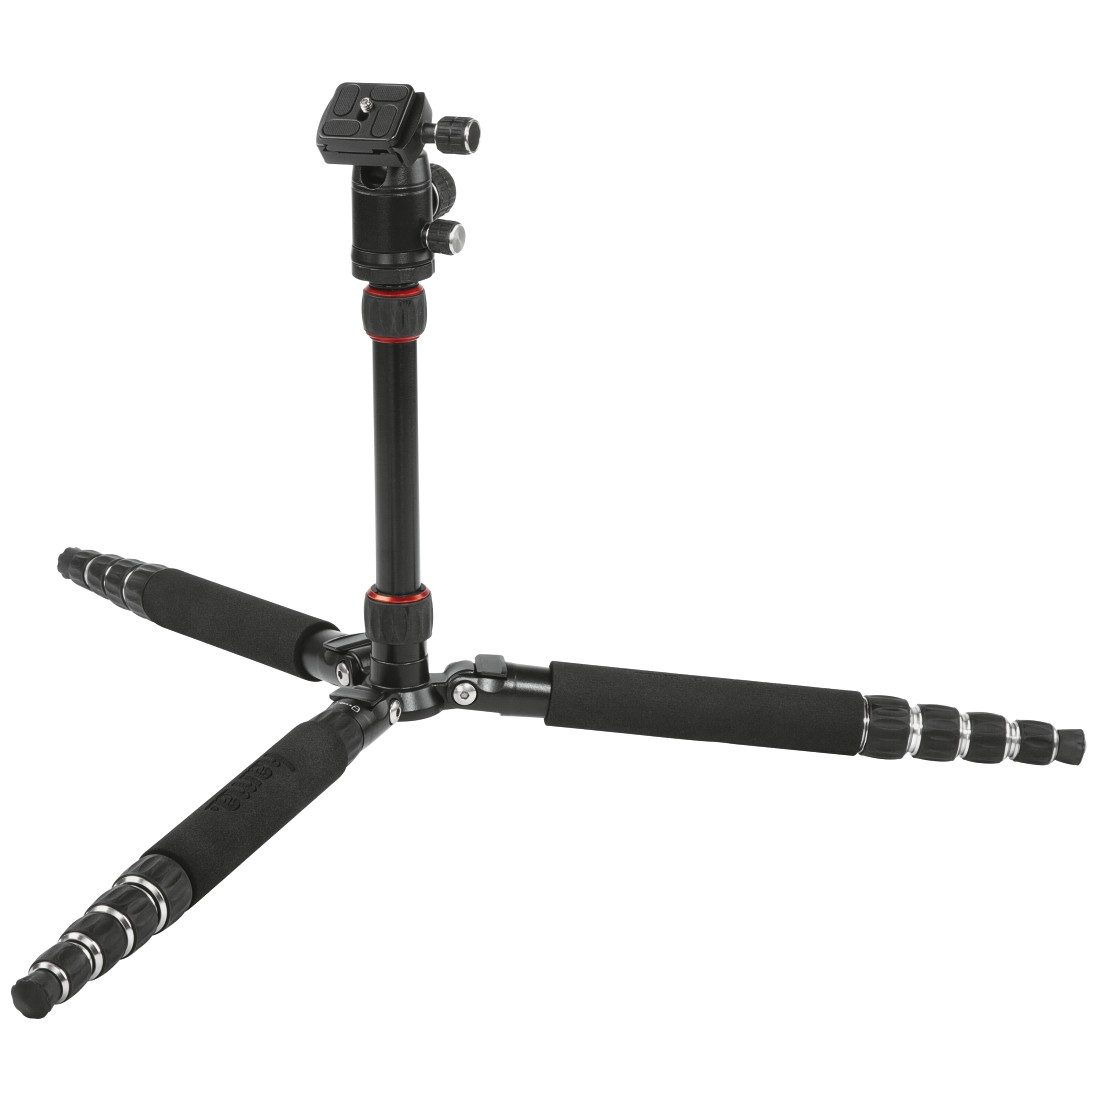 awx2 High-Res Appliance 2 - Hama, Traveller 146 Premium Duo Tripod